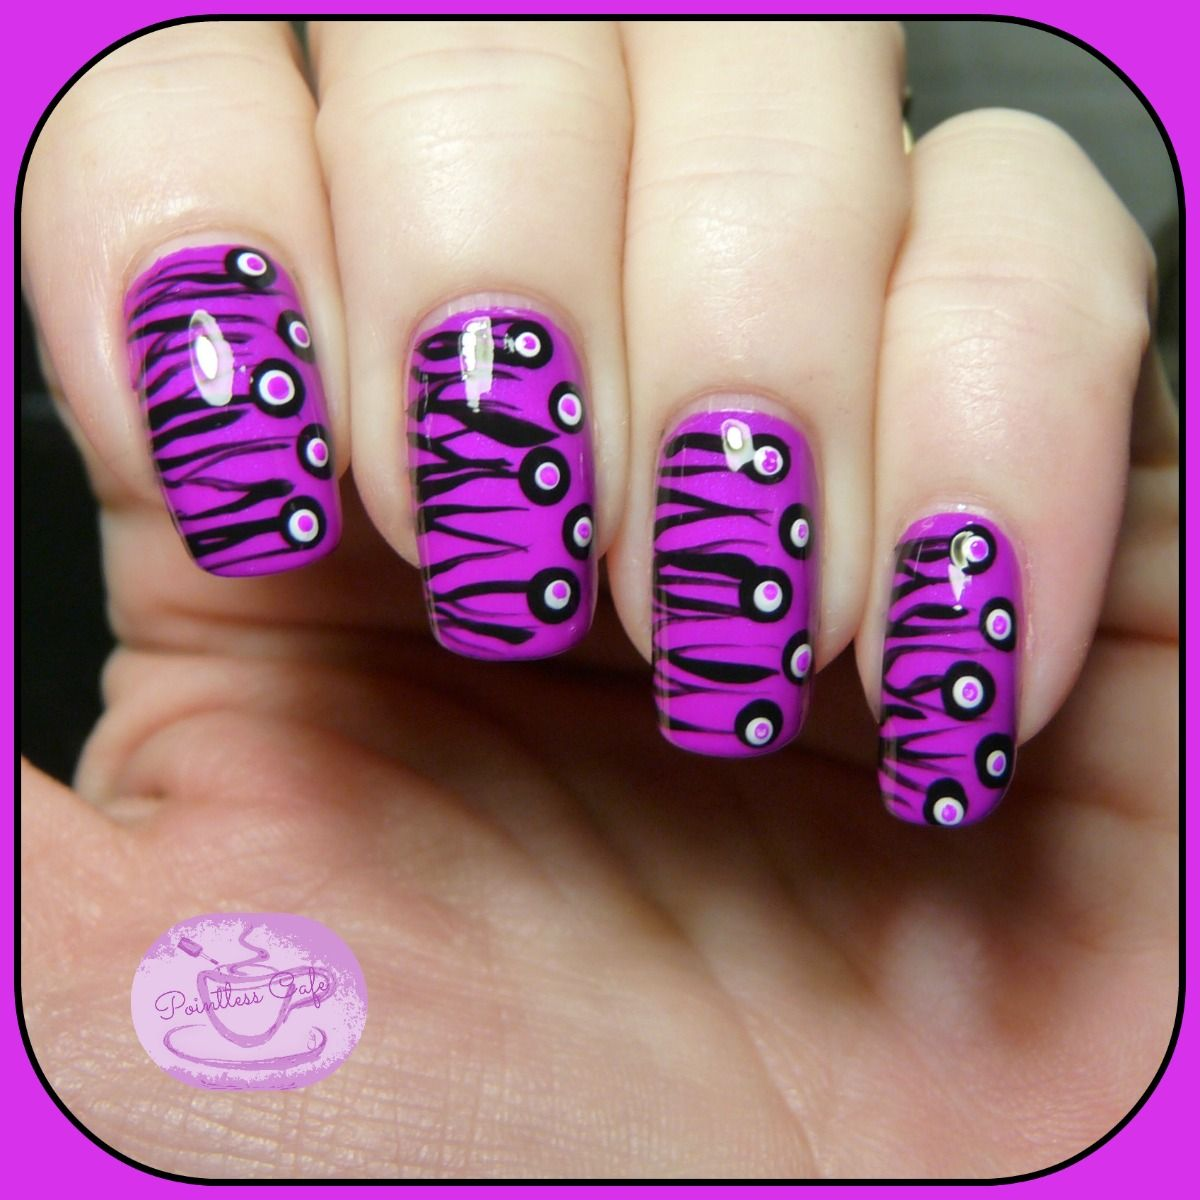 13 Days of January Nail Art Challenge: Half and Half   Pointless ...